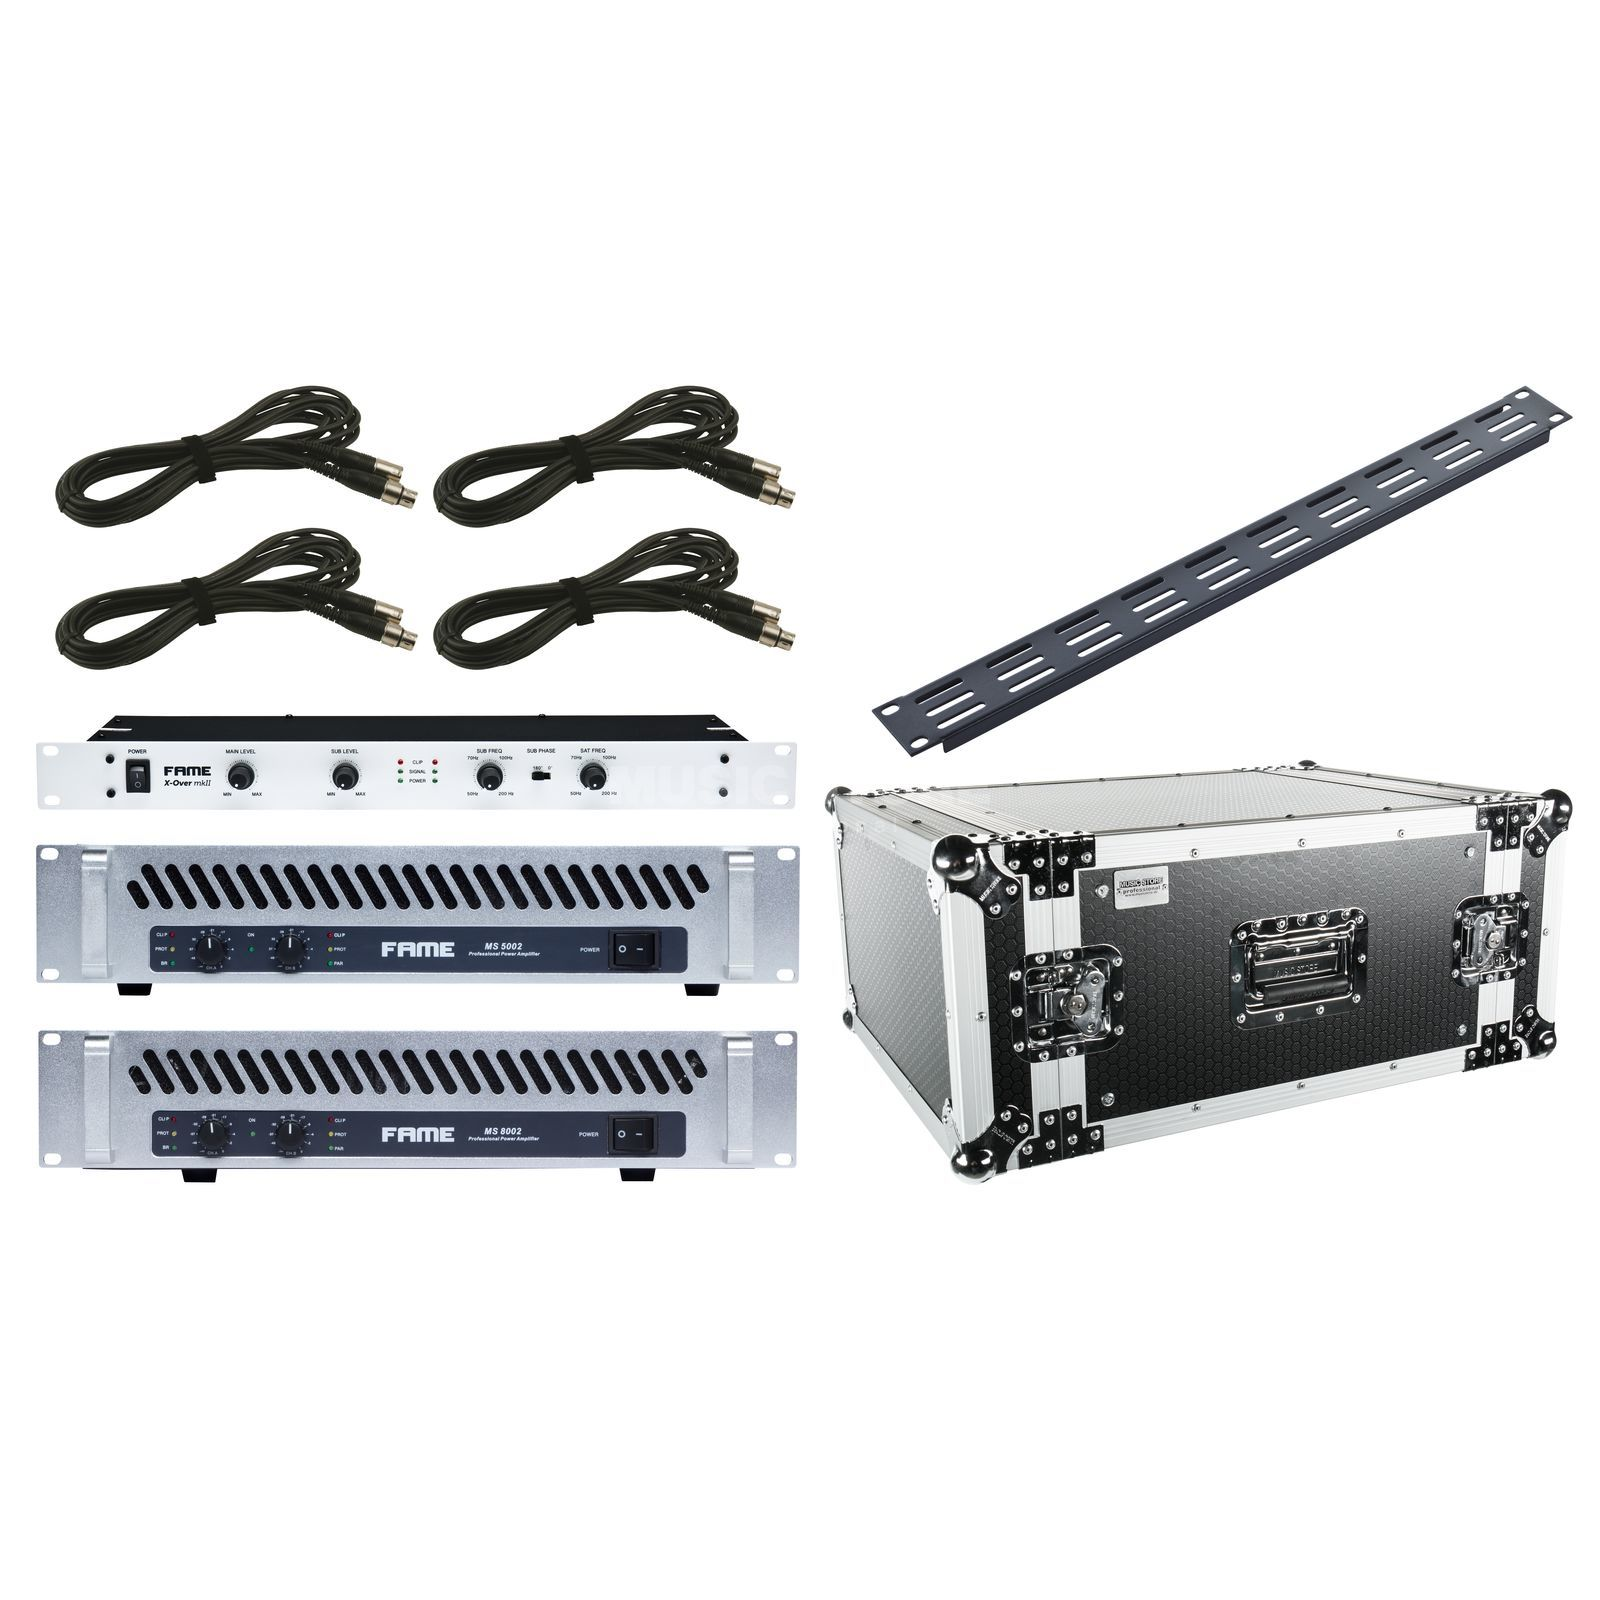 SET Fame Amp Rack I Endstufen, X-Over, Case, Kabel Produktbillede